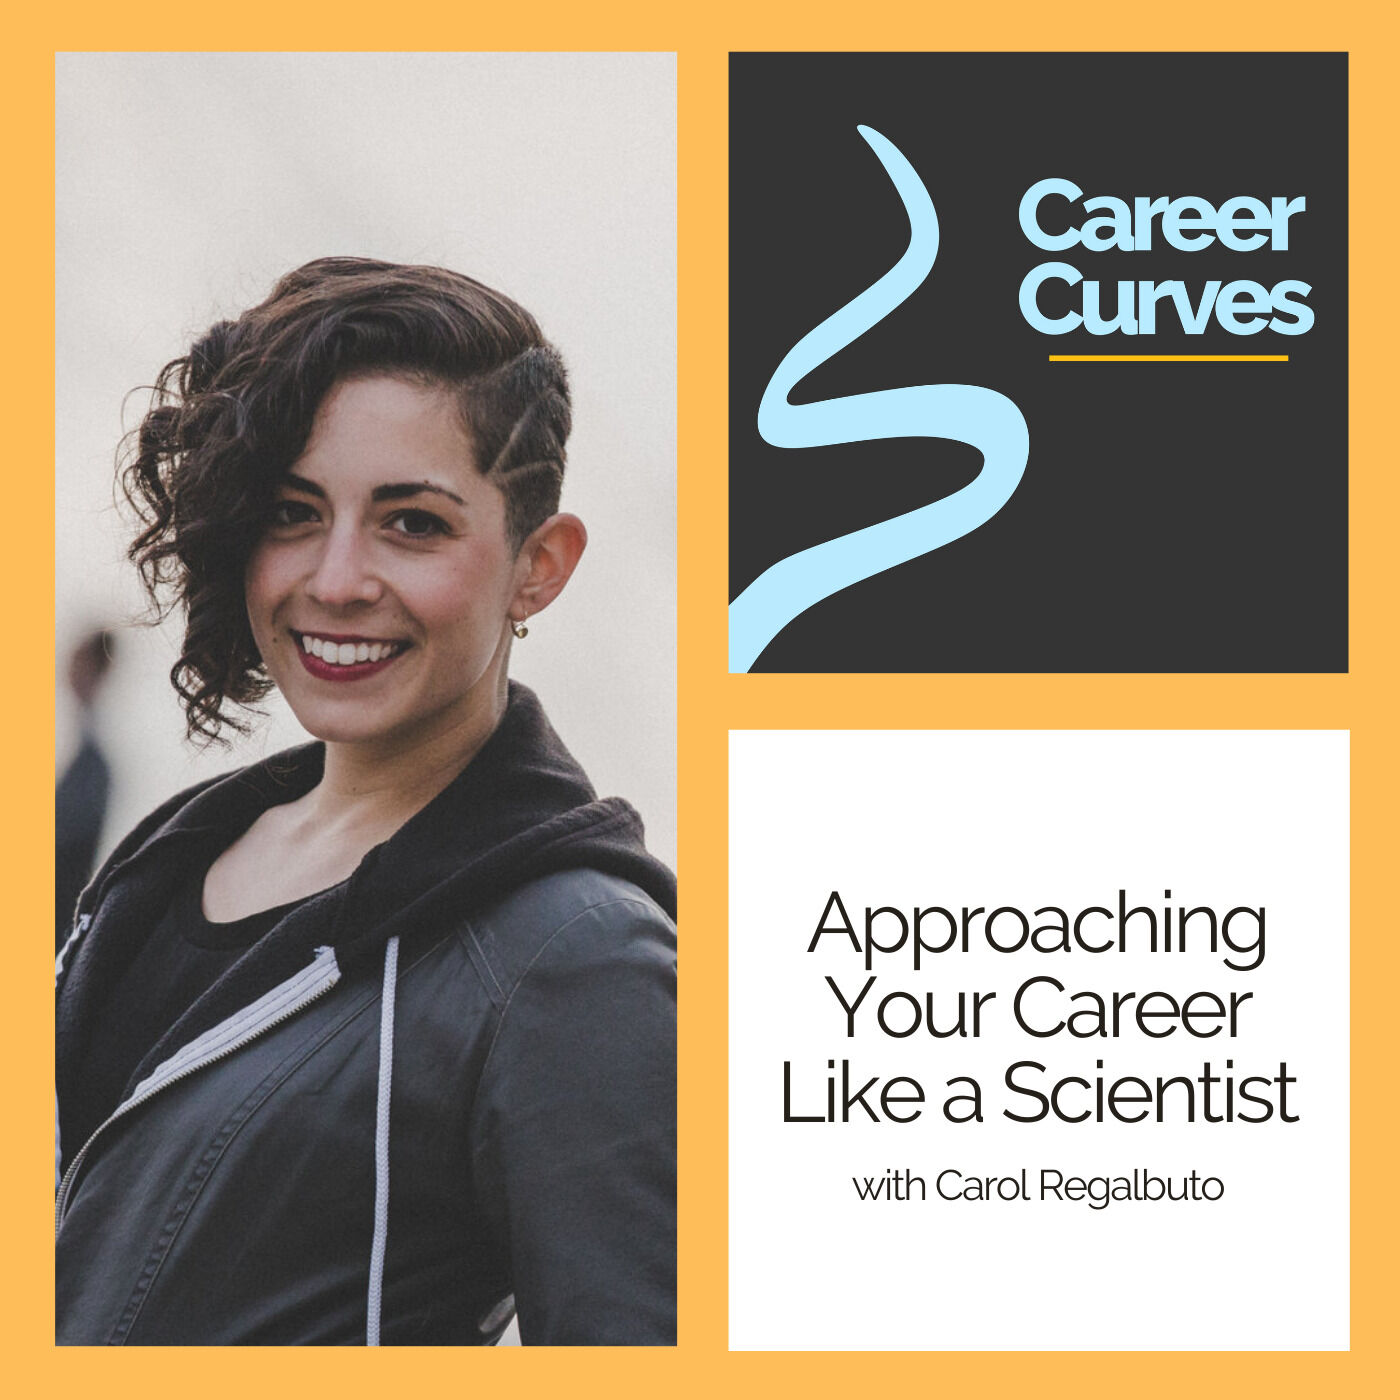 Approaching Your Career Like a Scientist with Carol Regalbuto